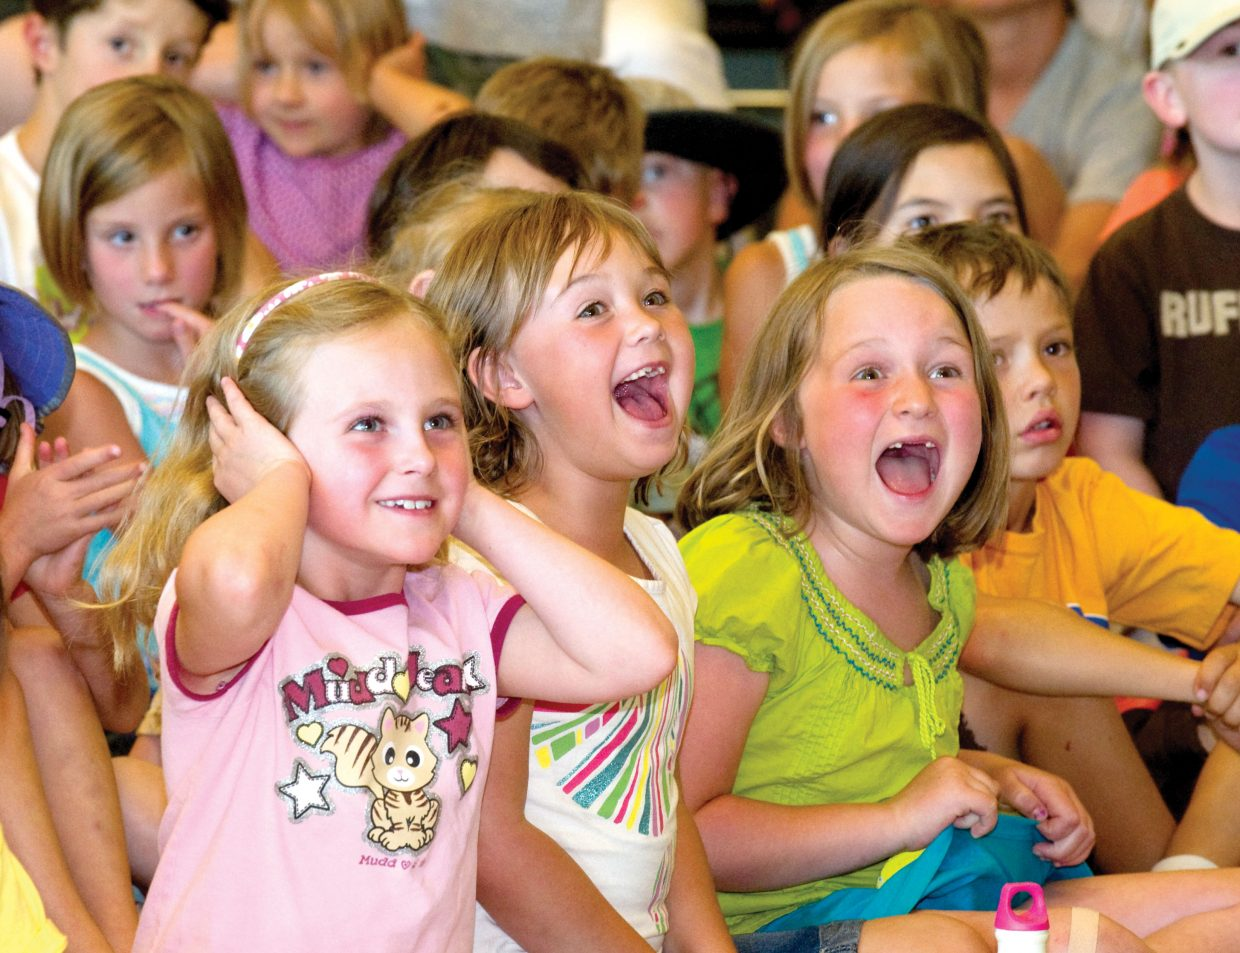 Students, from left, Sofia Karch, Paige Watson and Liv Mason react during a magic, juggling and comedy show by Ann Lincoln at the Bud Werner Memorial Library on Wednesday afternoon. The free show is part of the Youth Services Department's One World, Many Stories summer reading program.